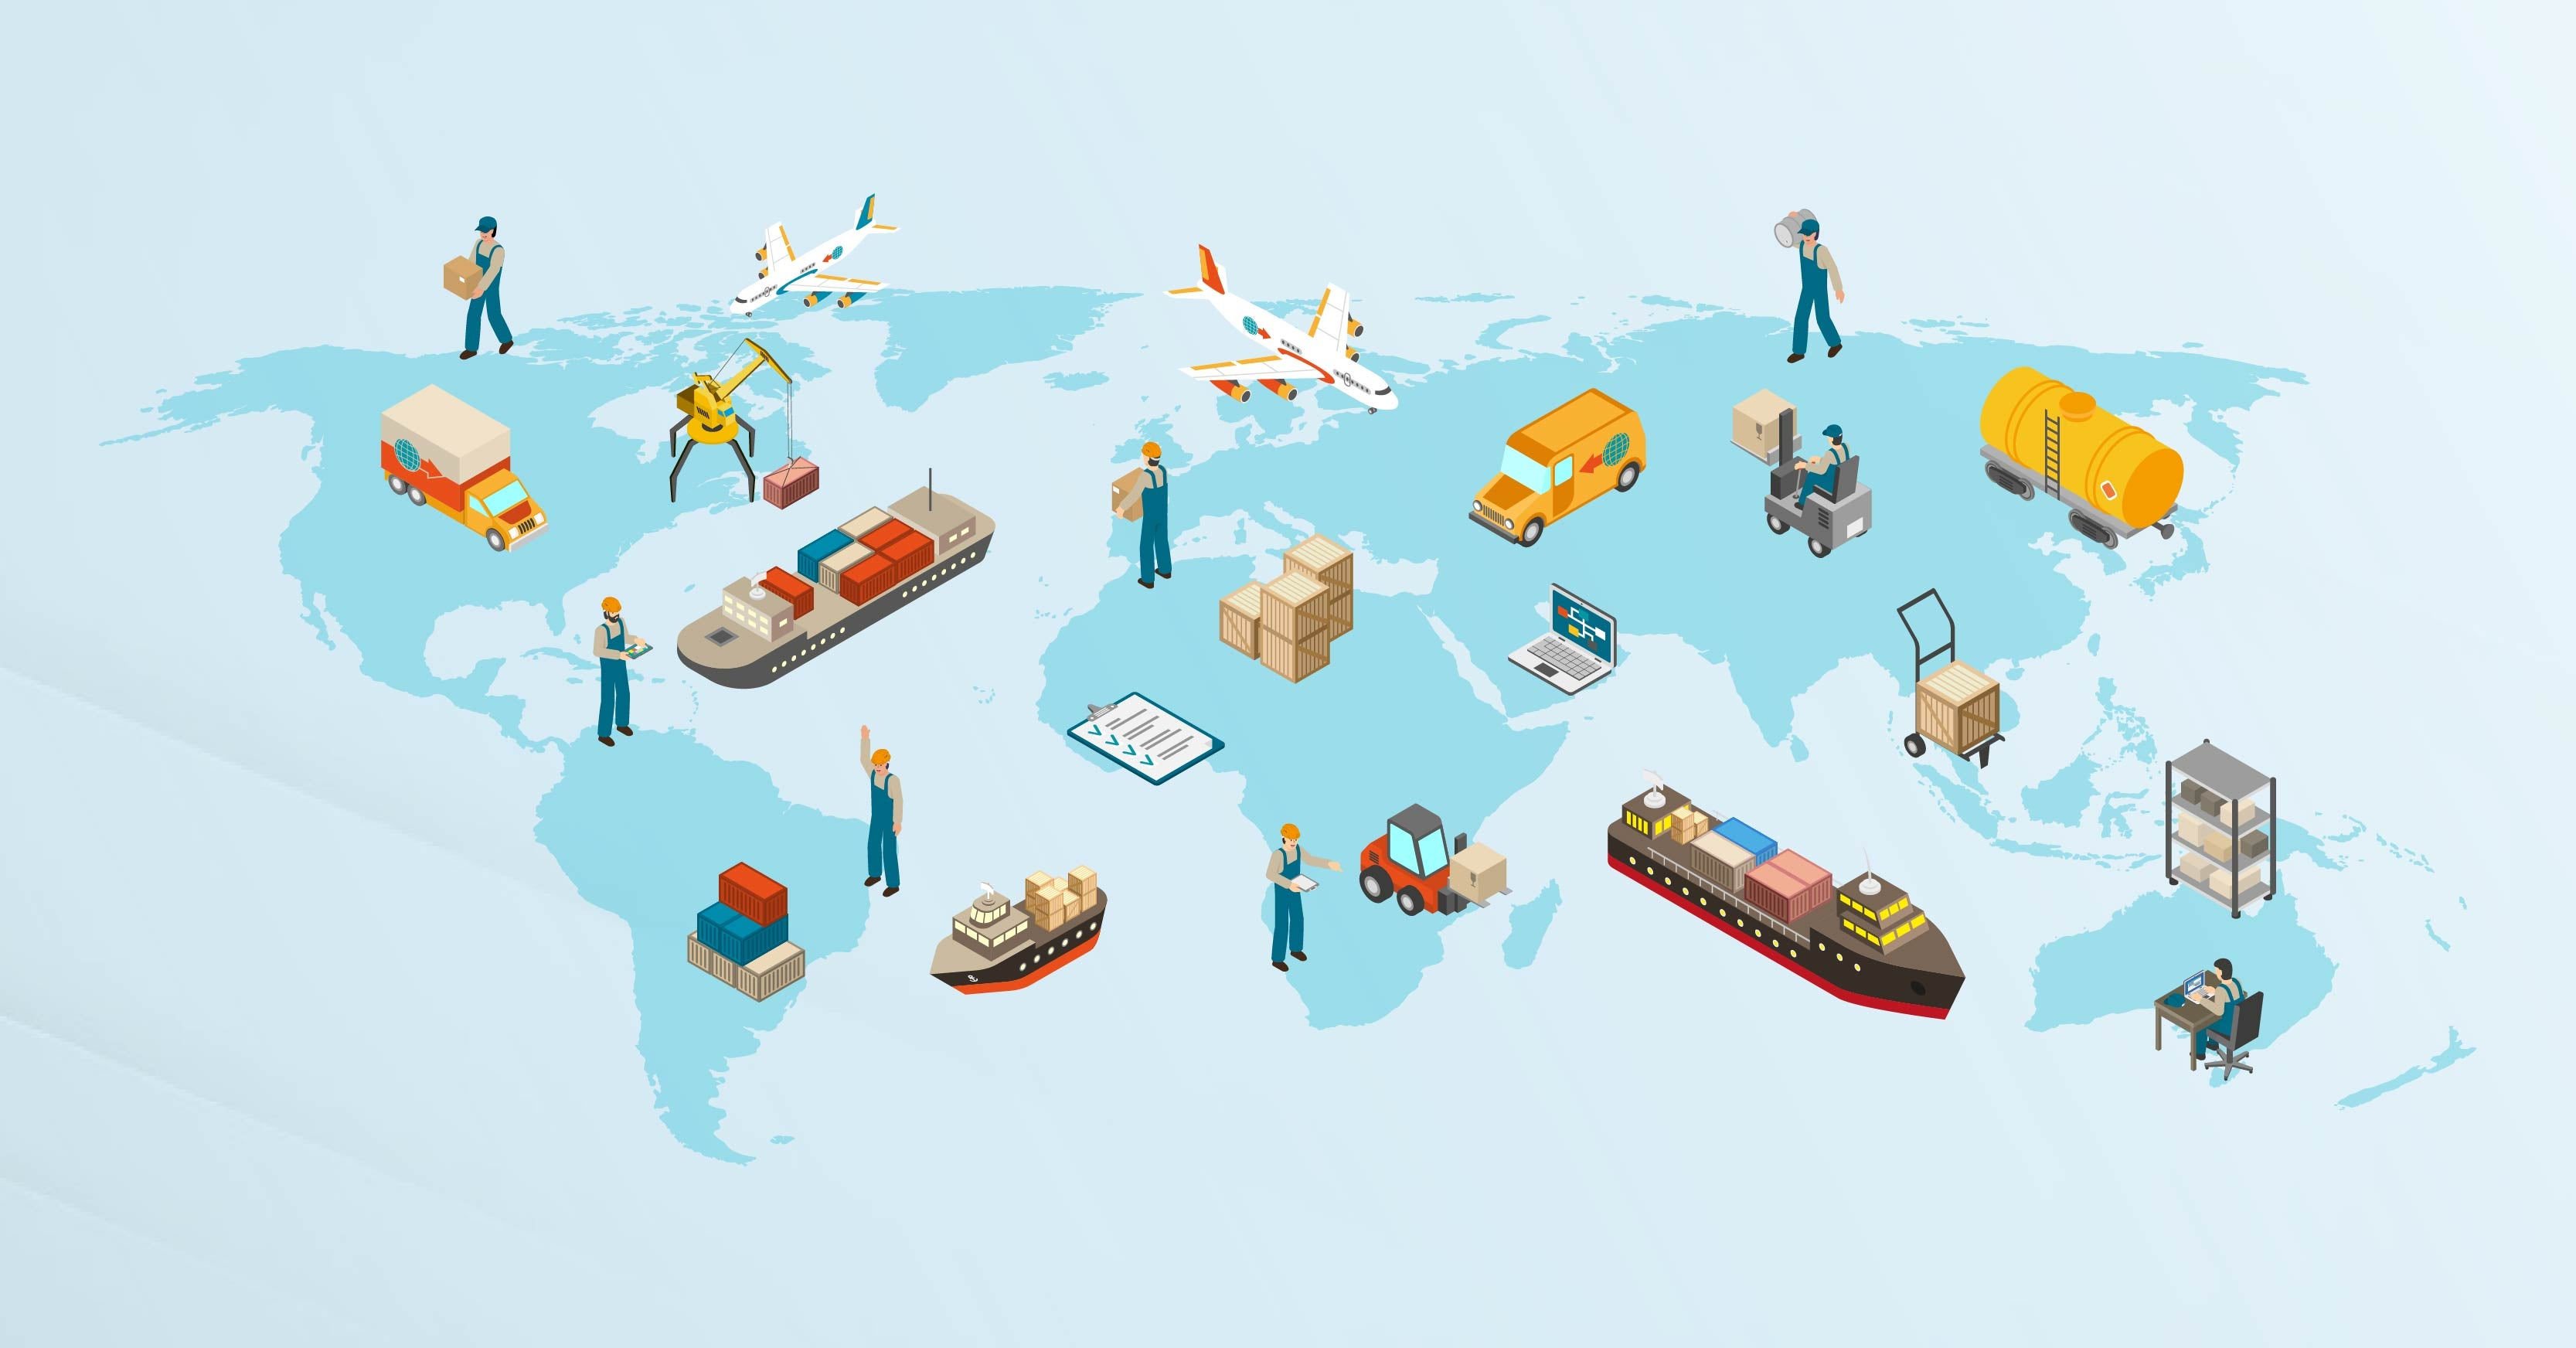 A map of the world dotted with icons representing global supply chains, including airplanes, ships, and containers.